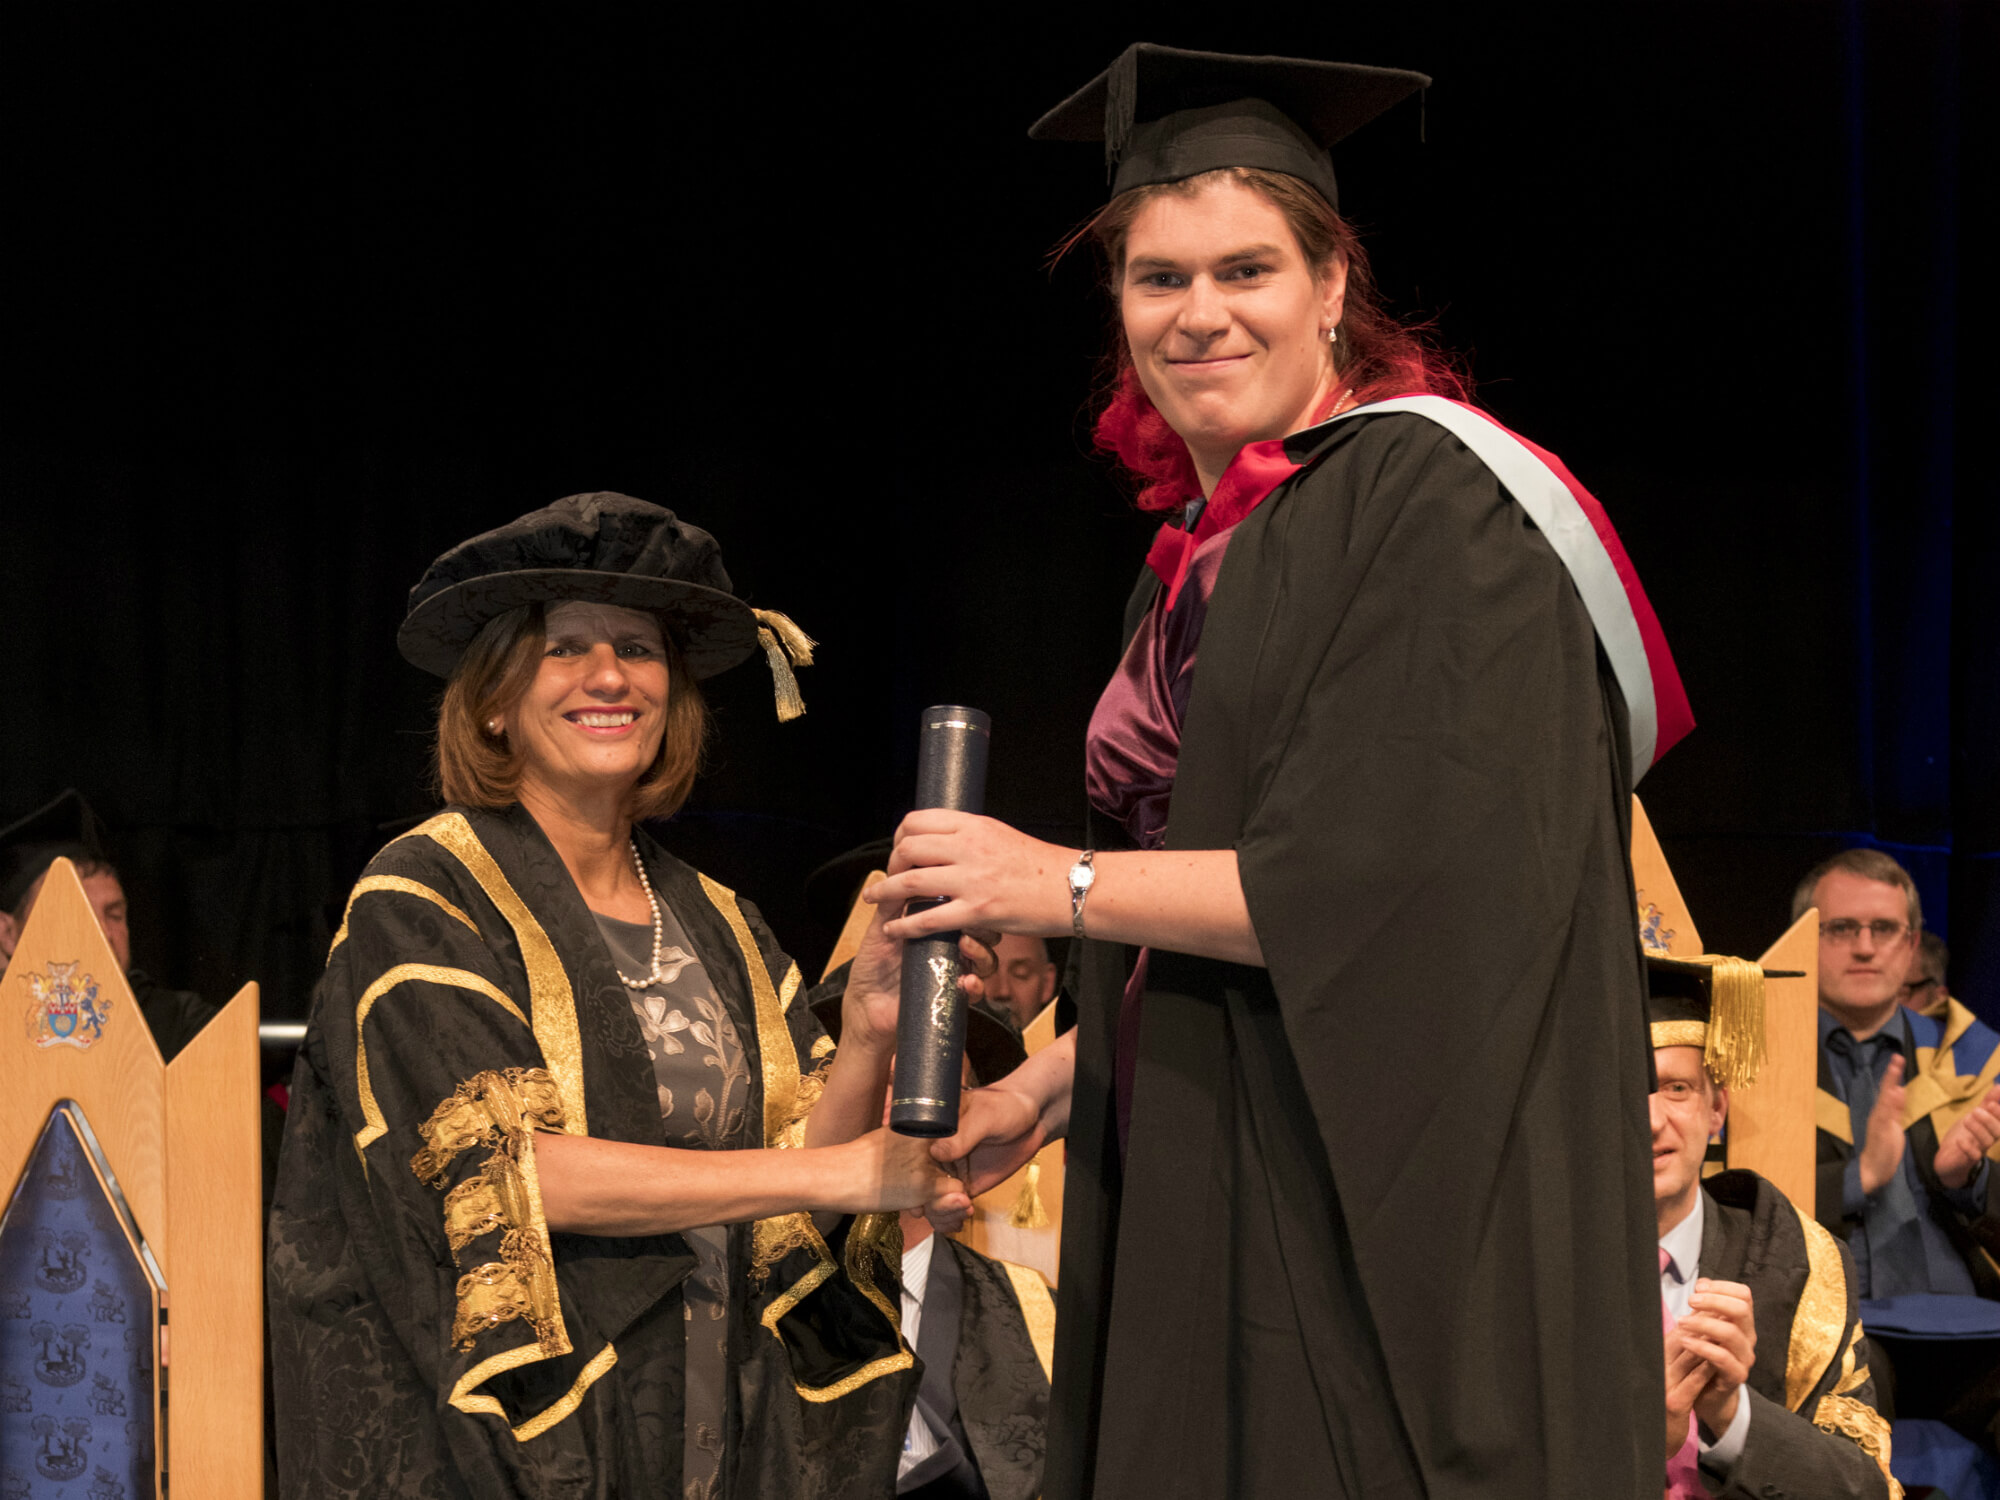 Young woman in a graduation gown, receiving the award from female Vice-Chancellor